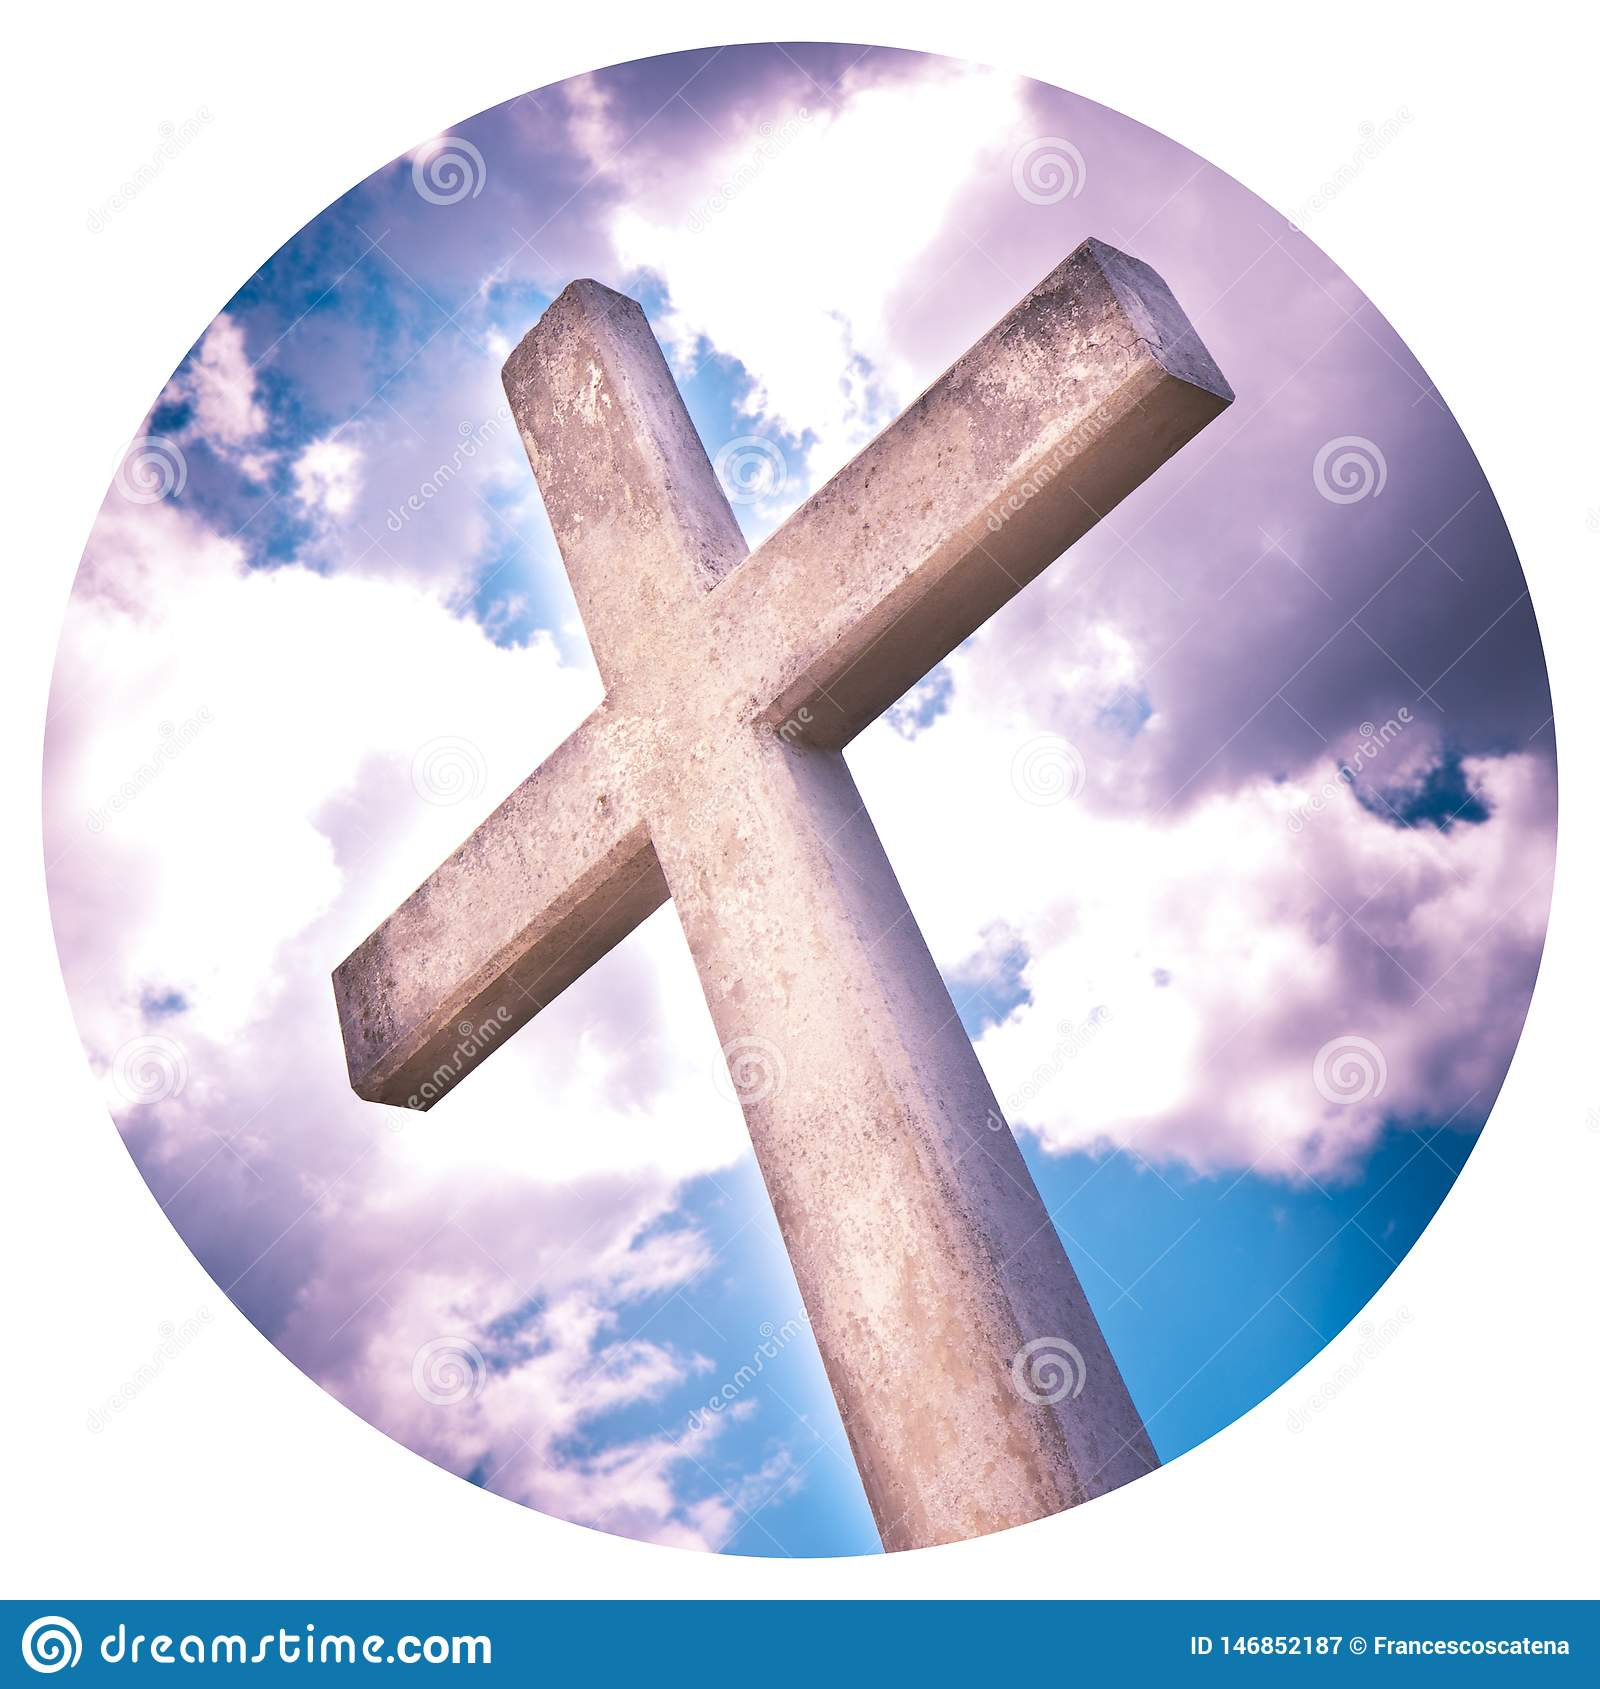 Concrete christian cross against a dramatic cloudy sky - - Round icon concept image - Photography in a circle